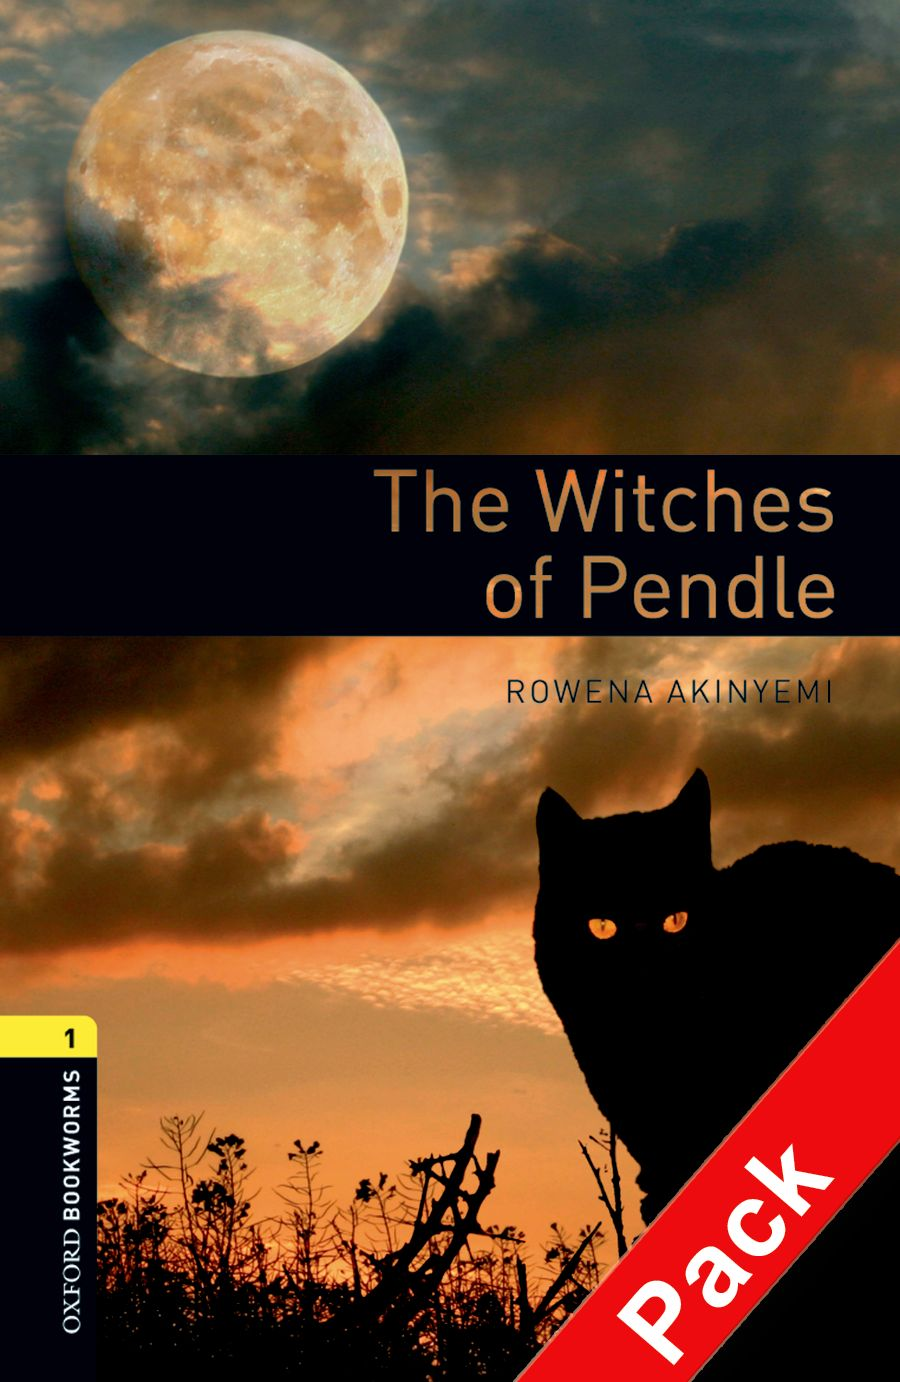 купить OXFORD bookworms library 1: WITCHES OF PENDLE PACK 3E по цене 699 рублей